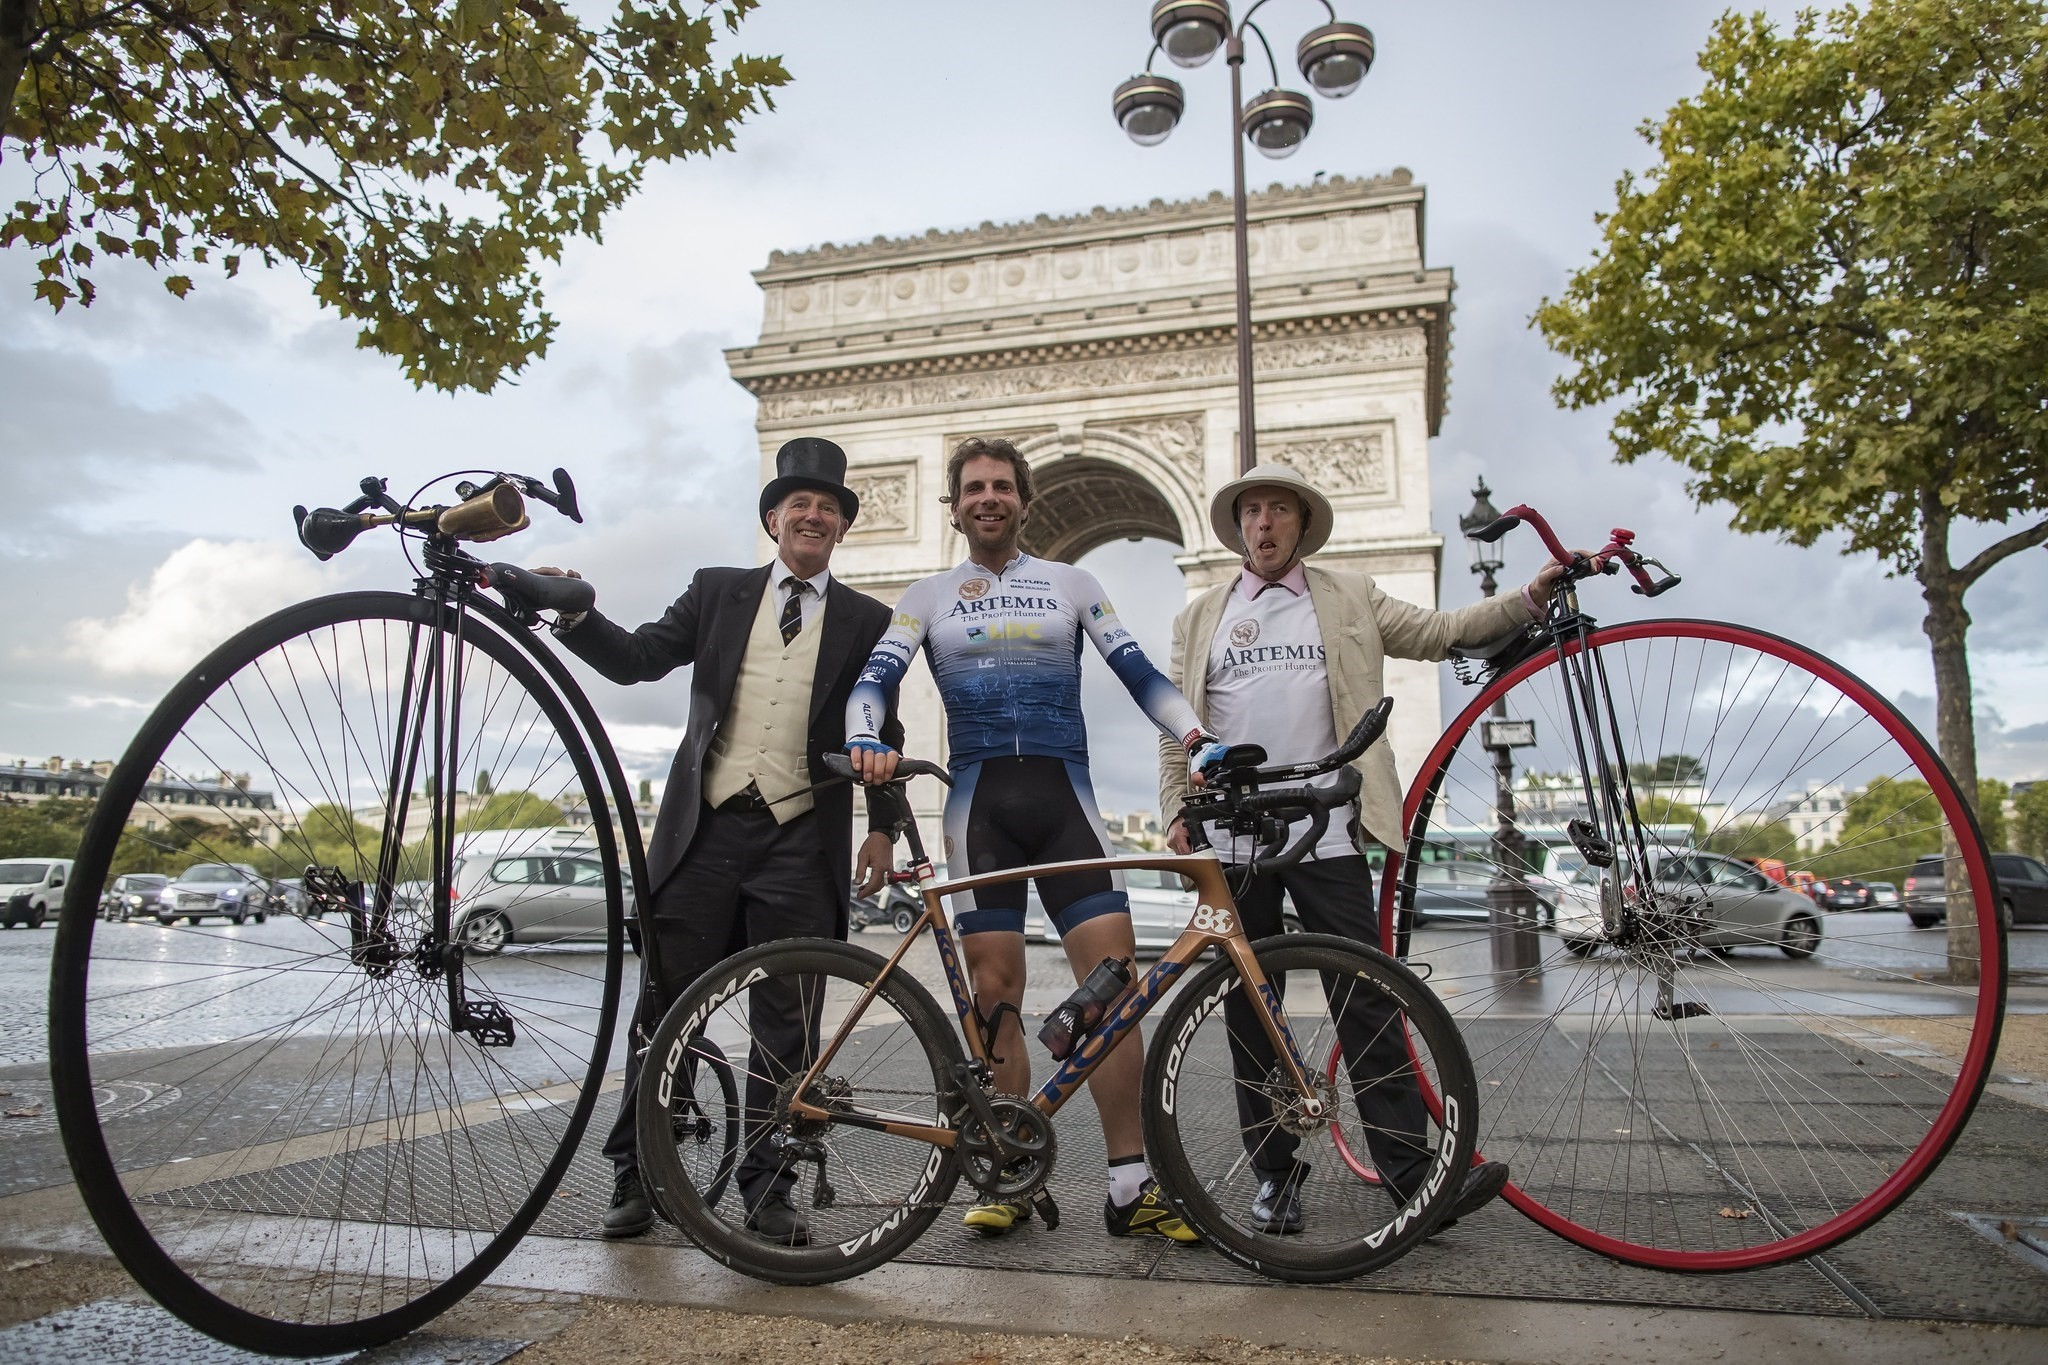 British athlete and adventurer Mark Beaumont poses with men with old bicycles as he arrives in Paris after cycling around the world in a record-setting 78 days. (EPA Photo)